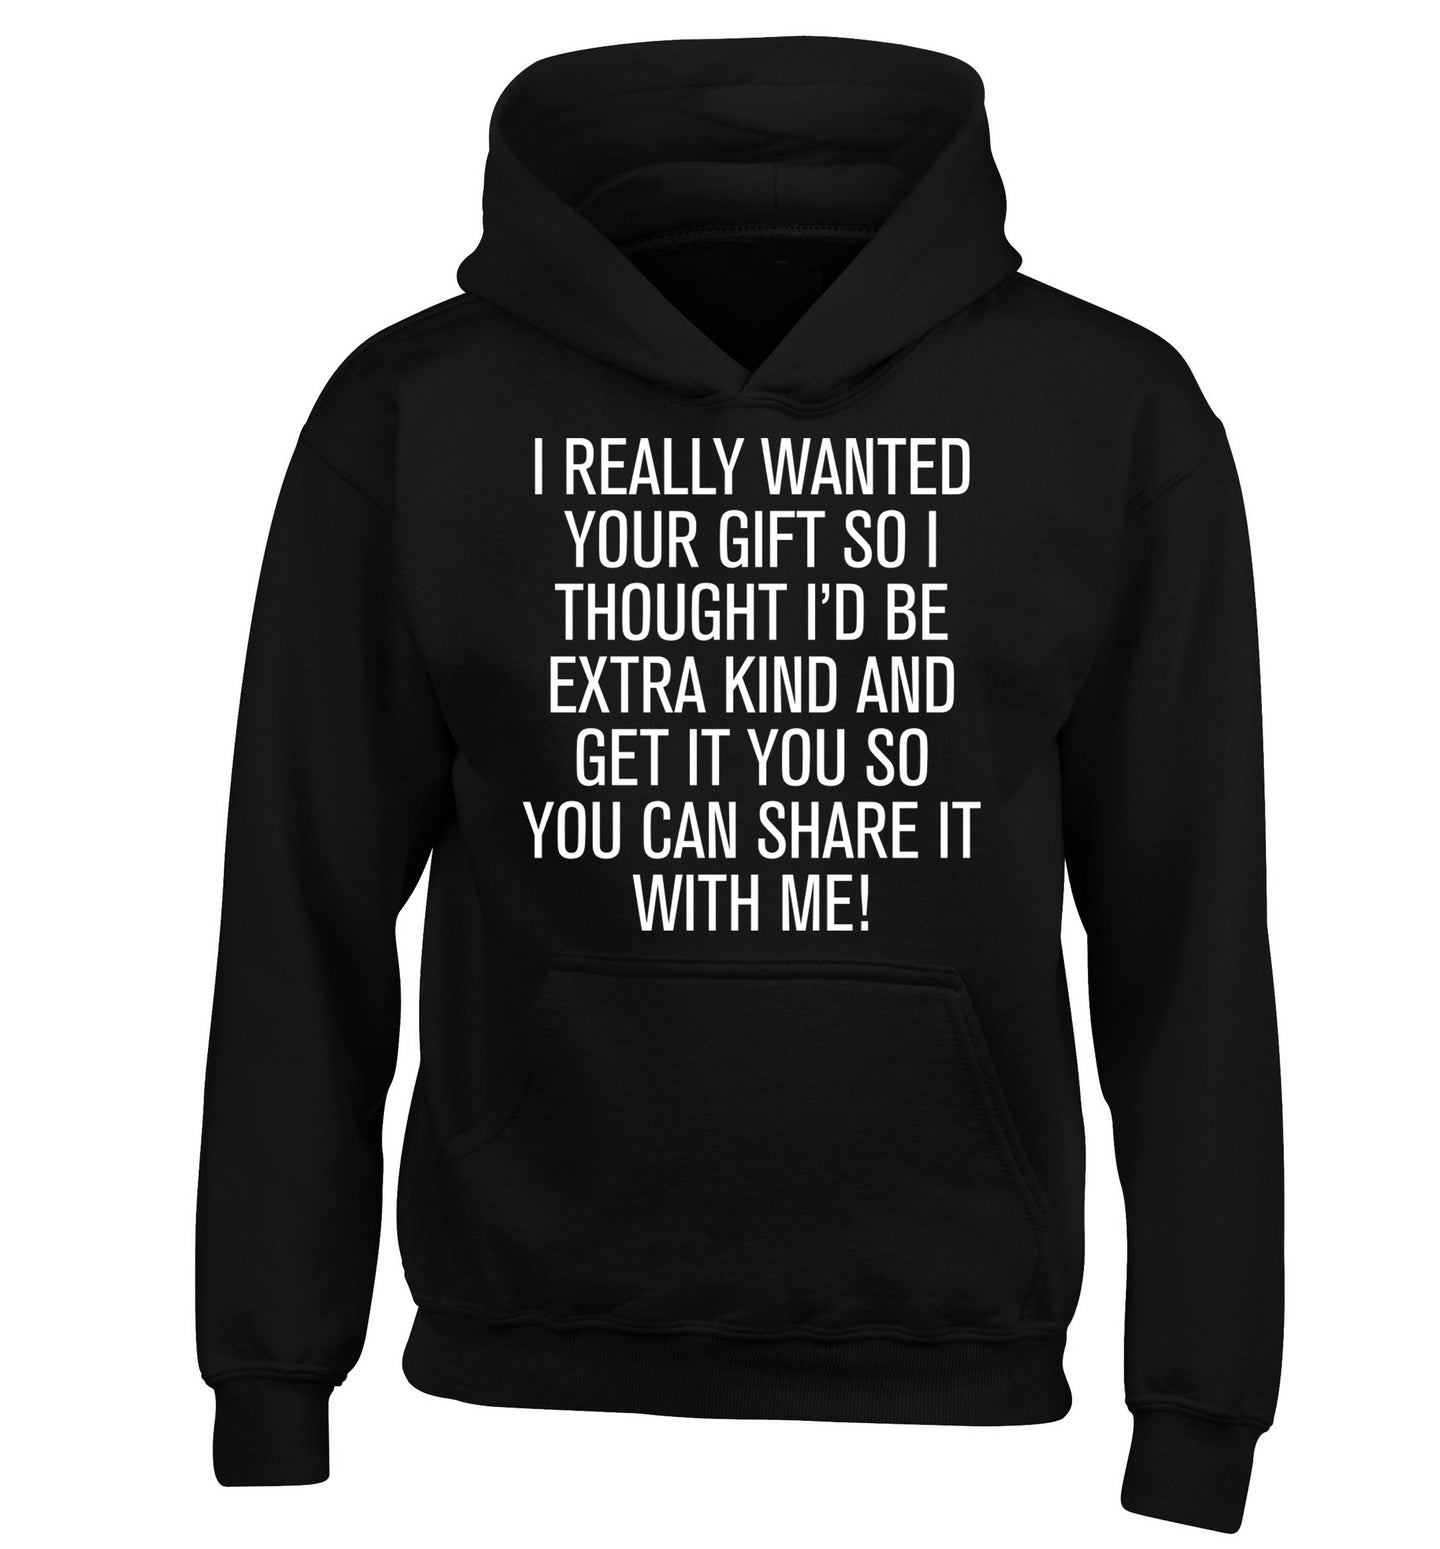 I really wanted your gift children's black hoodie 12-13 Years